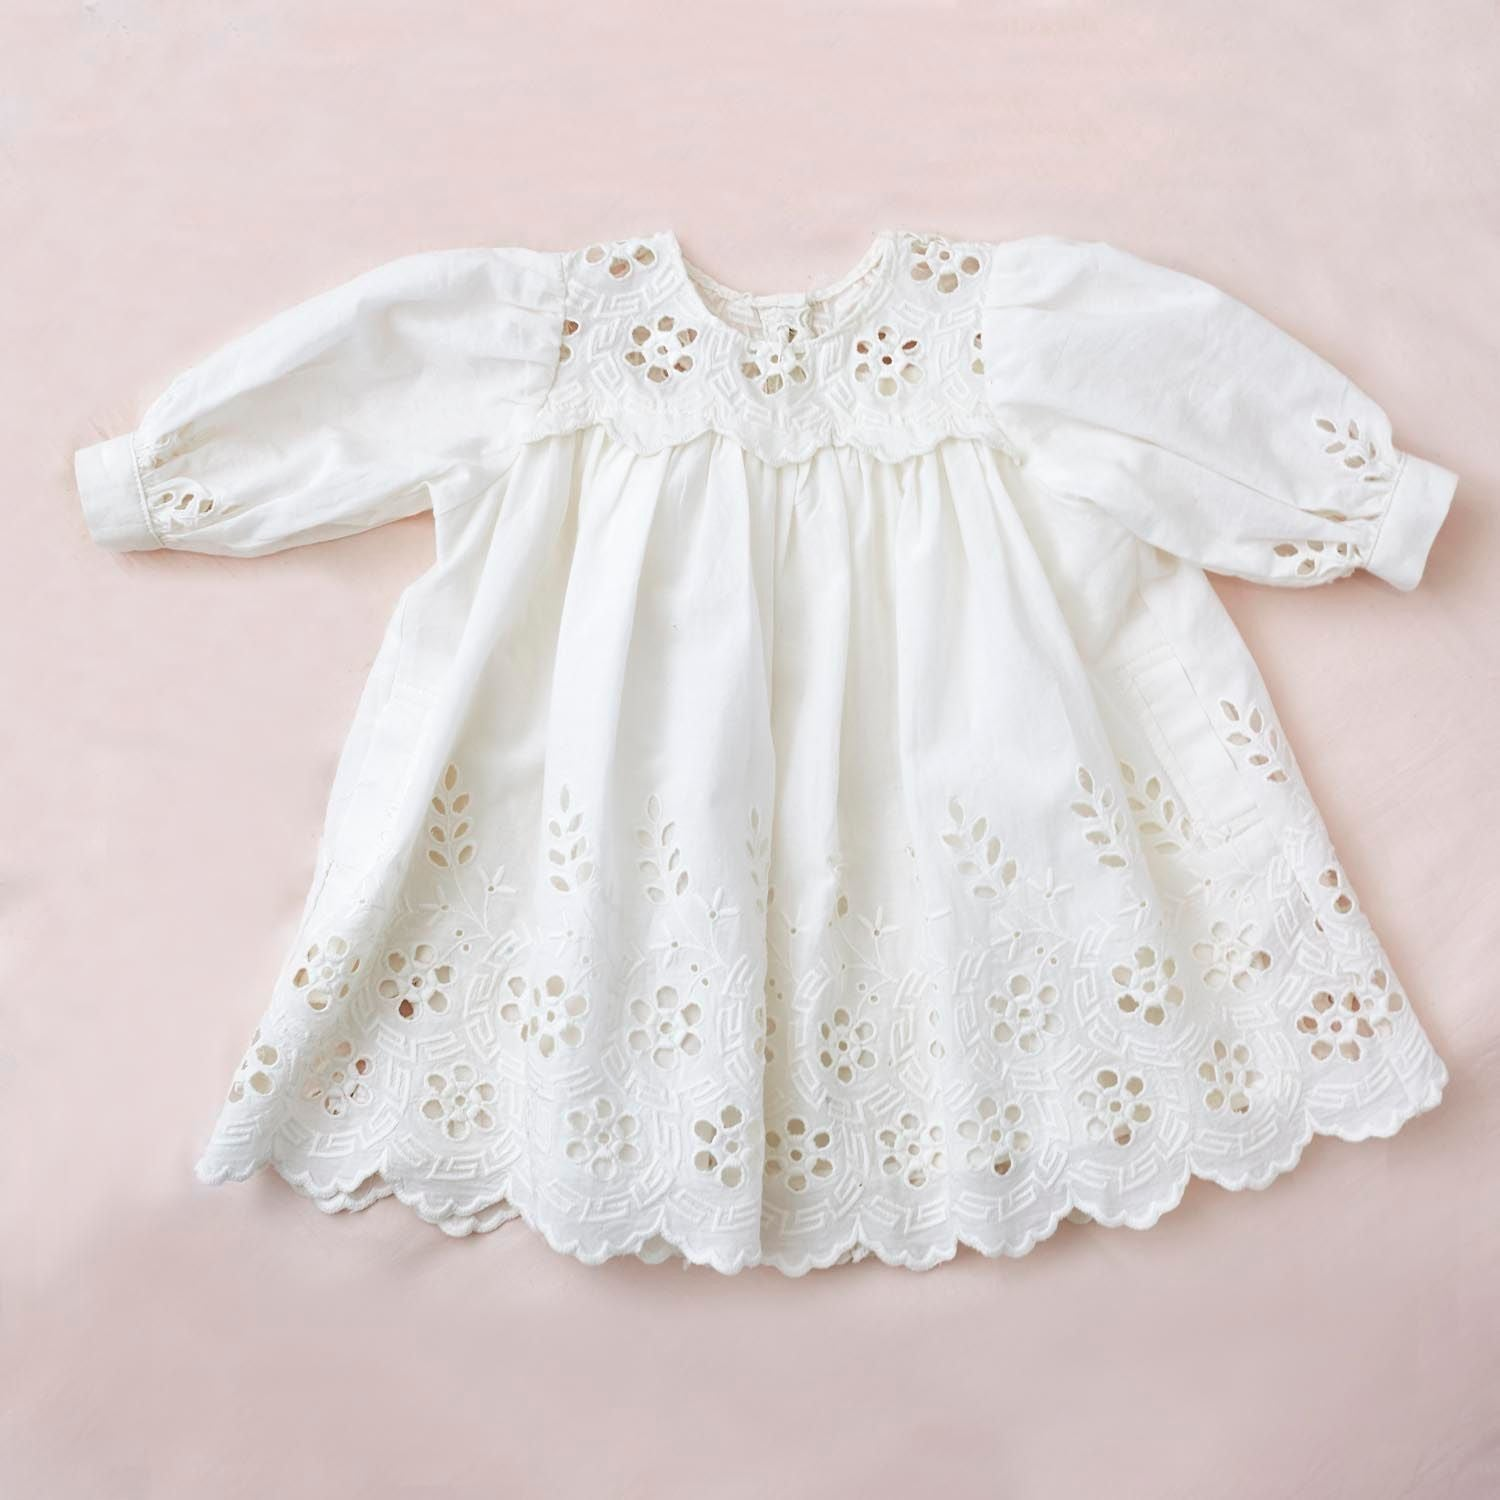 Petite Amalie Bebe Embroidered Dress